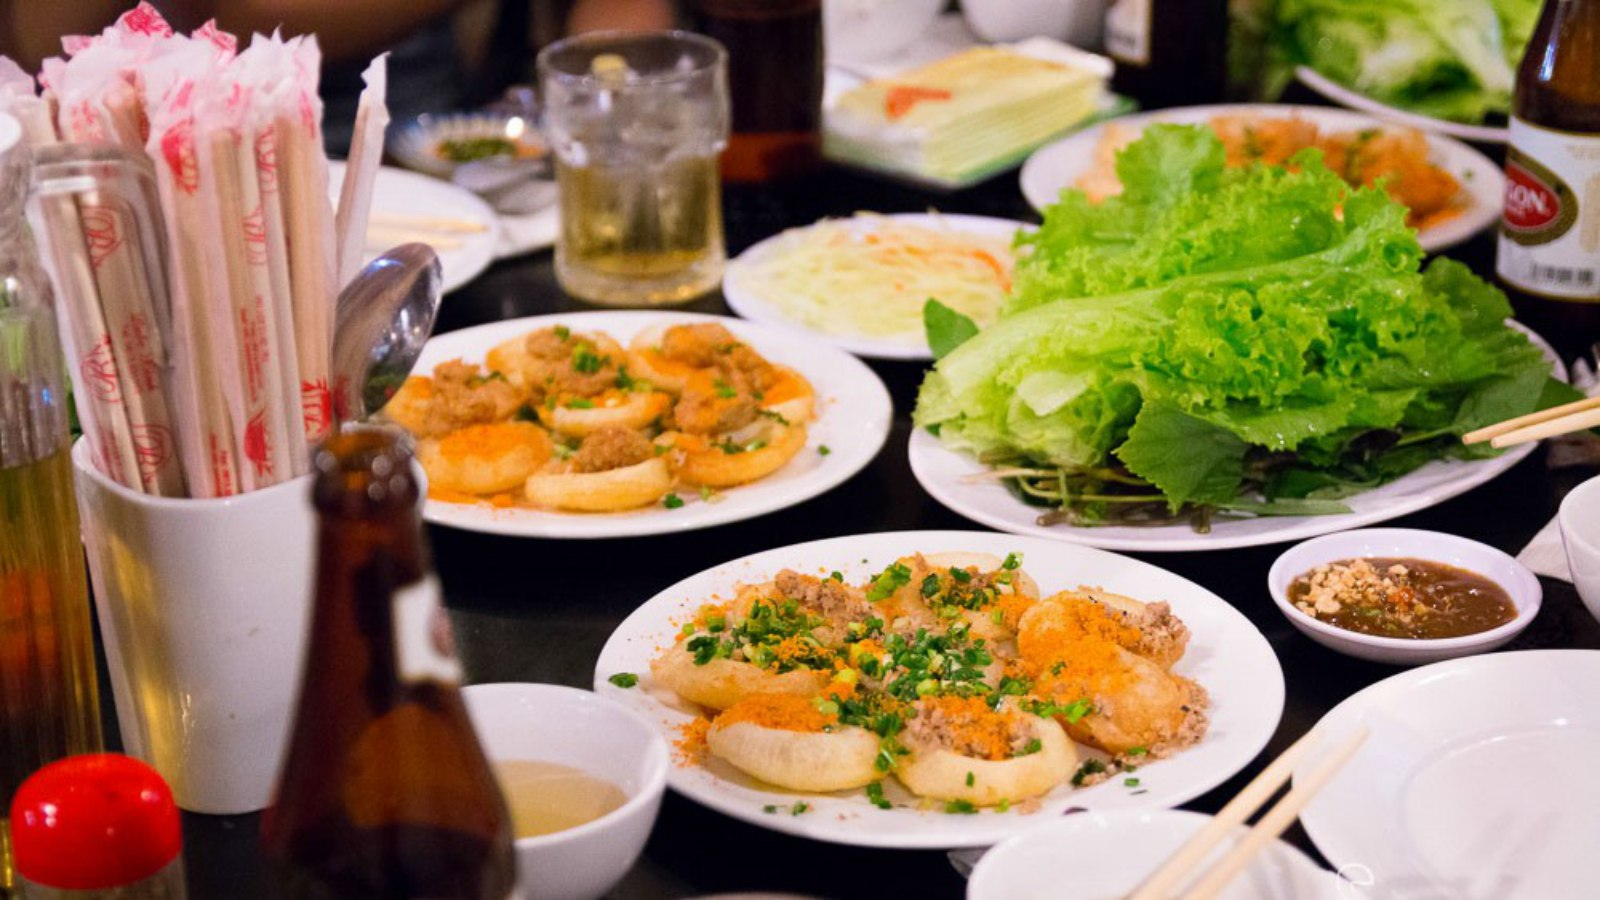 vietnamese-dishes-in-the-dinner